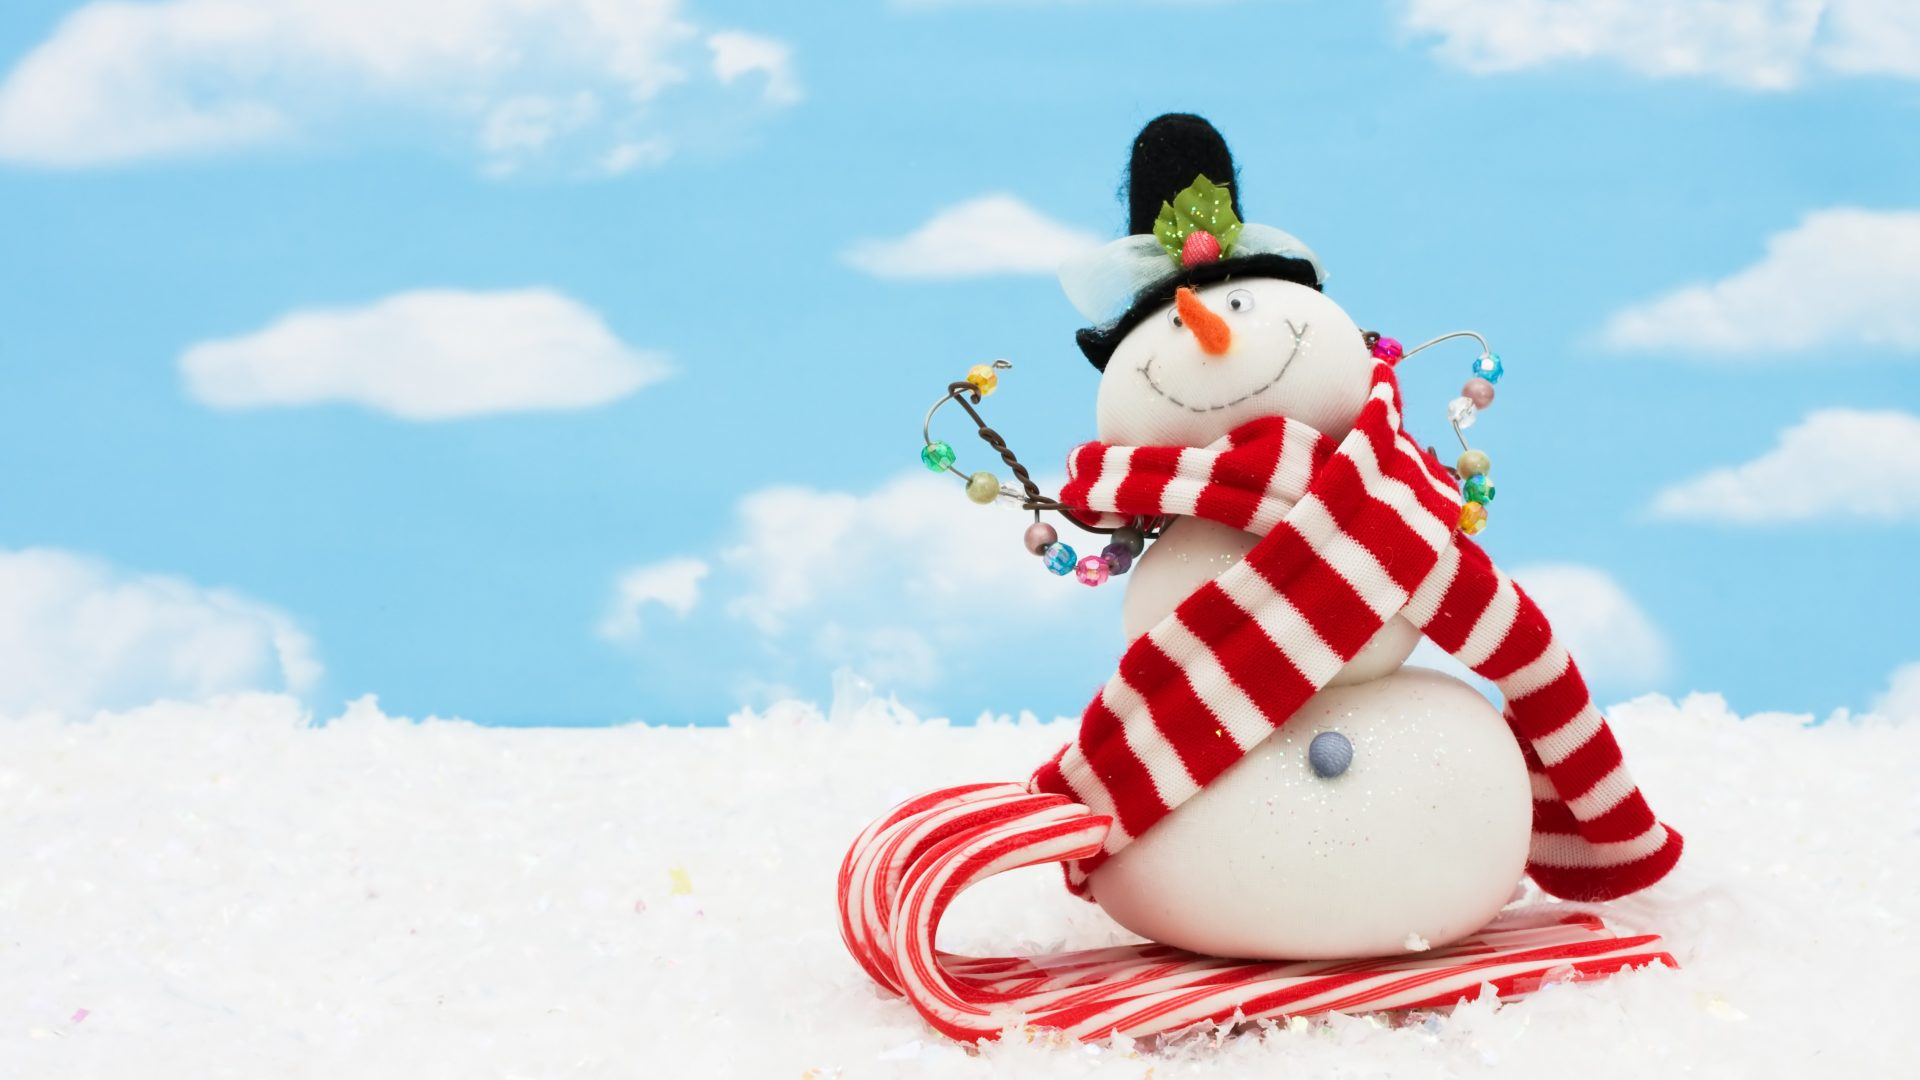 Download Winter Snowman Wallpaper Hd Backgrounds Download